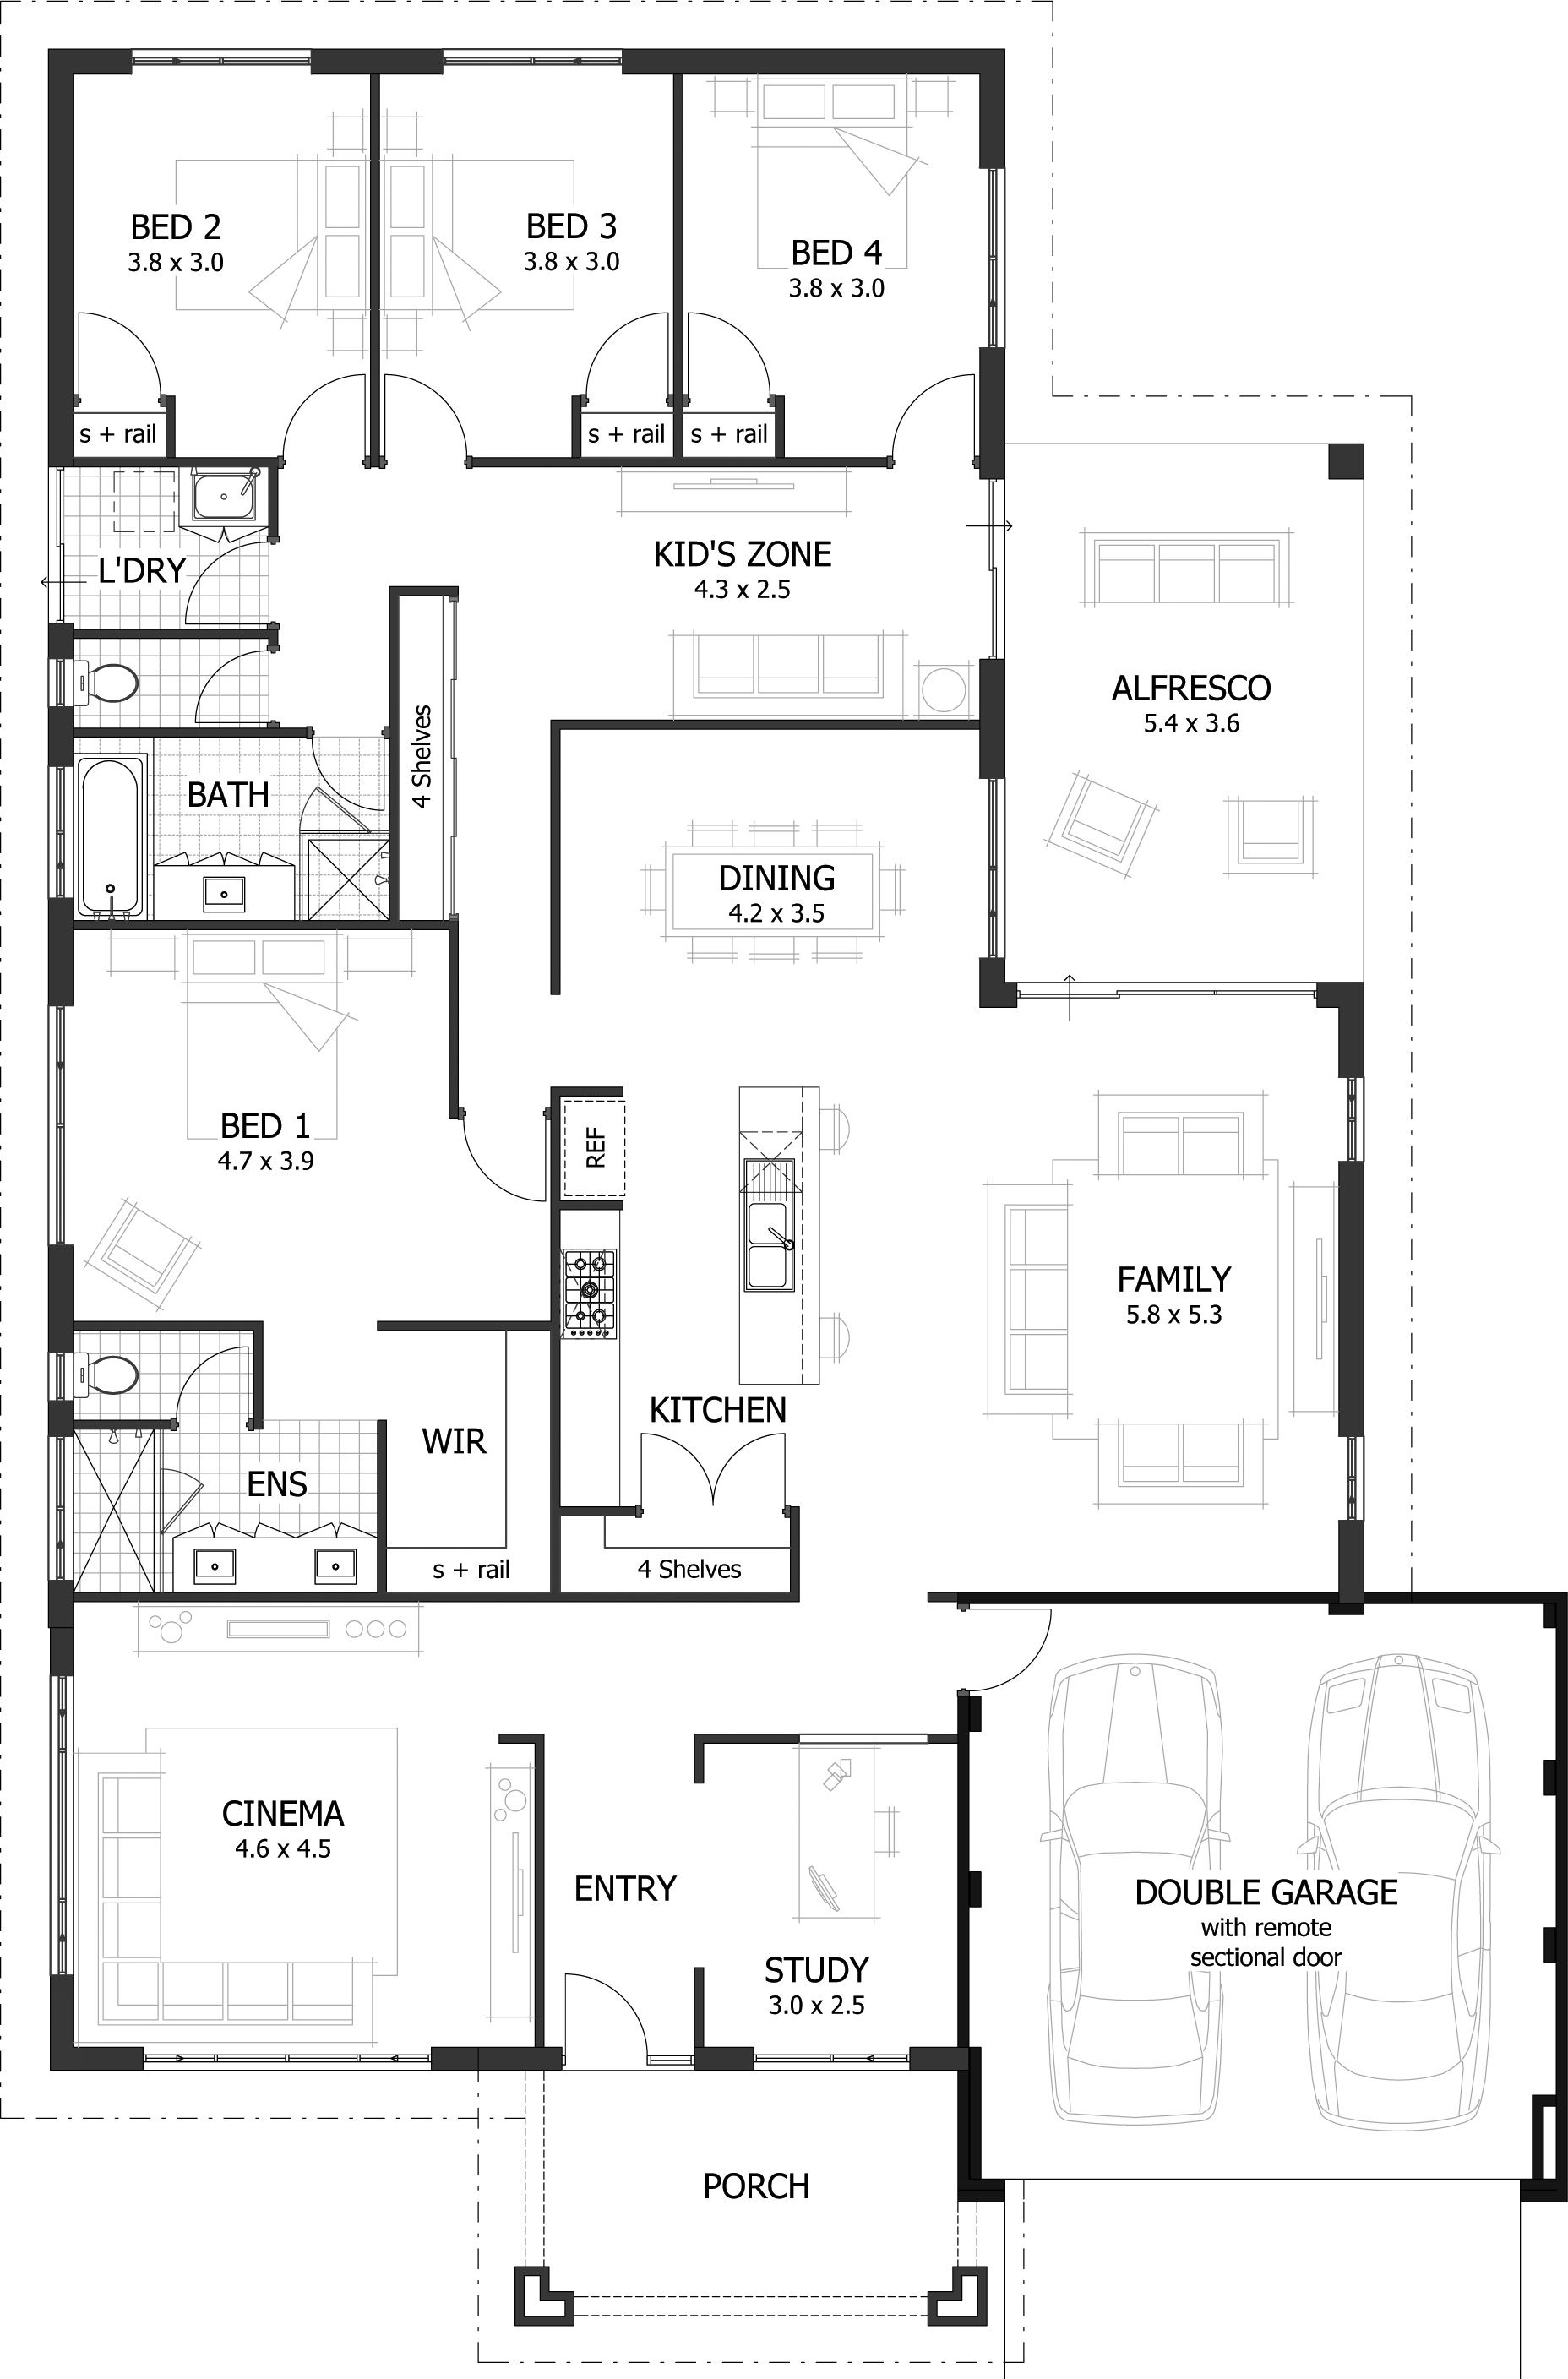 4 bedroom house plans home designs celebration homes for House plans with large kitchen and family room